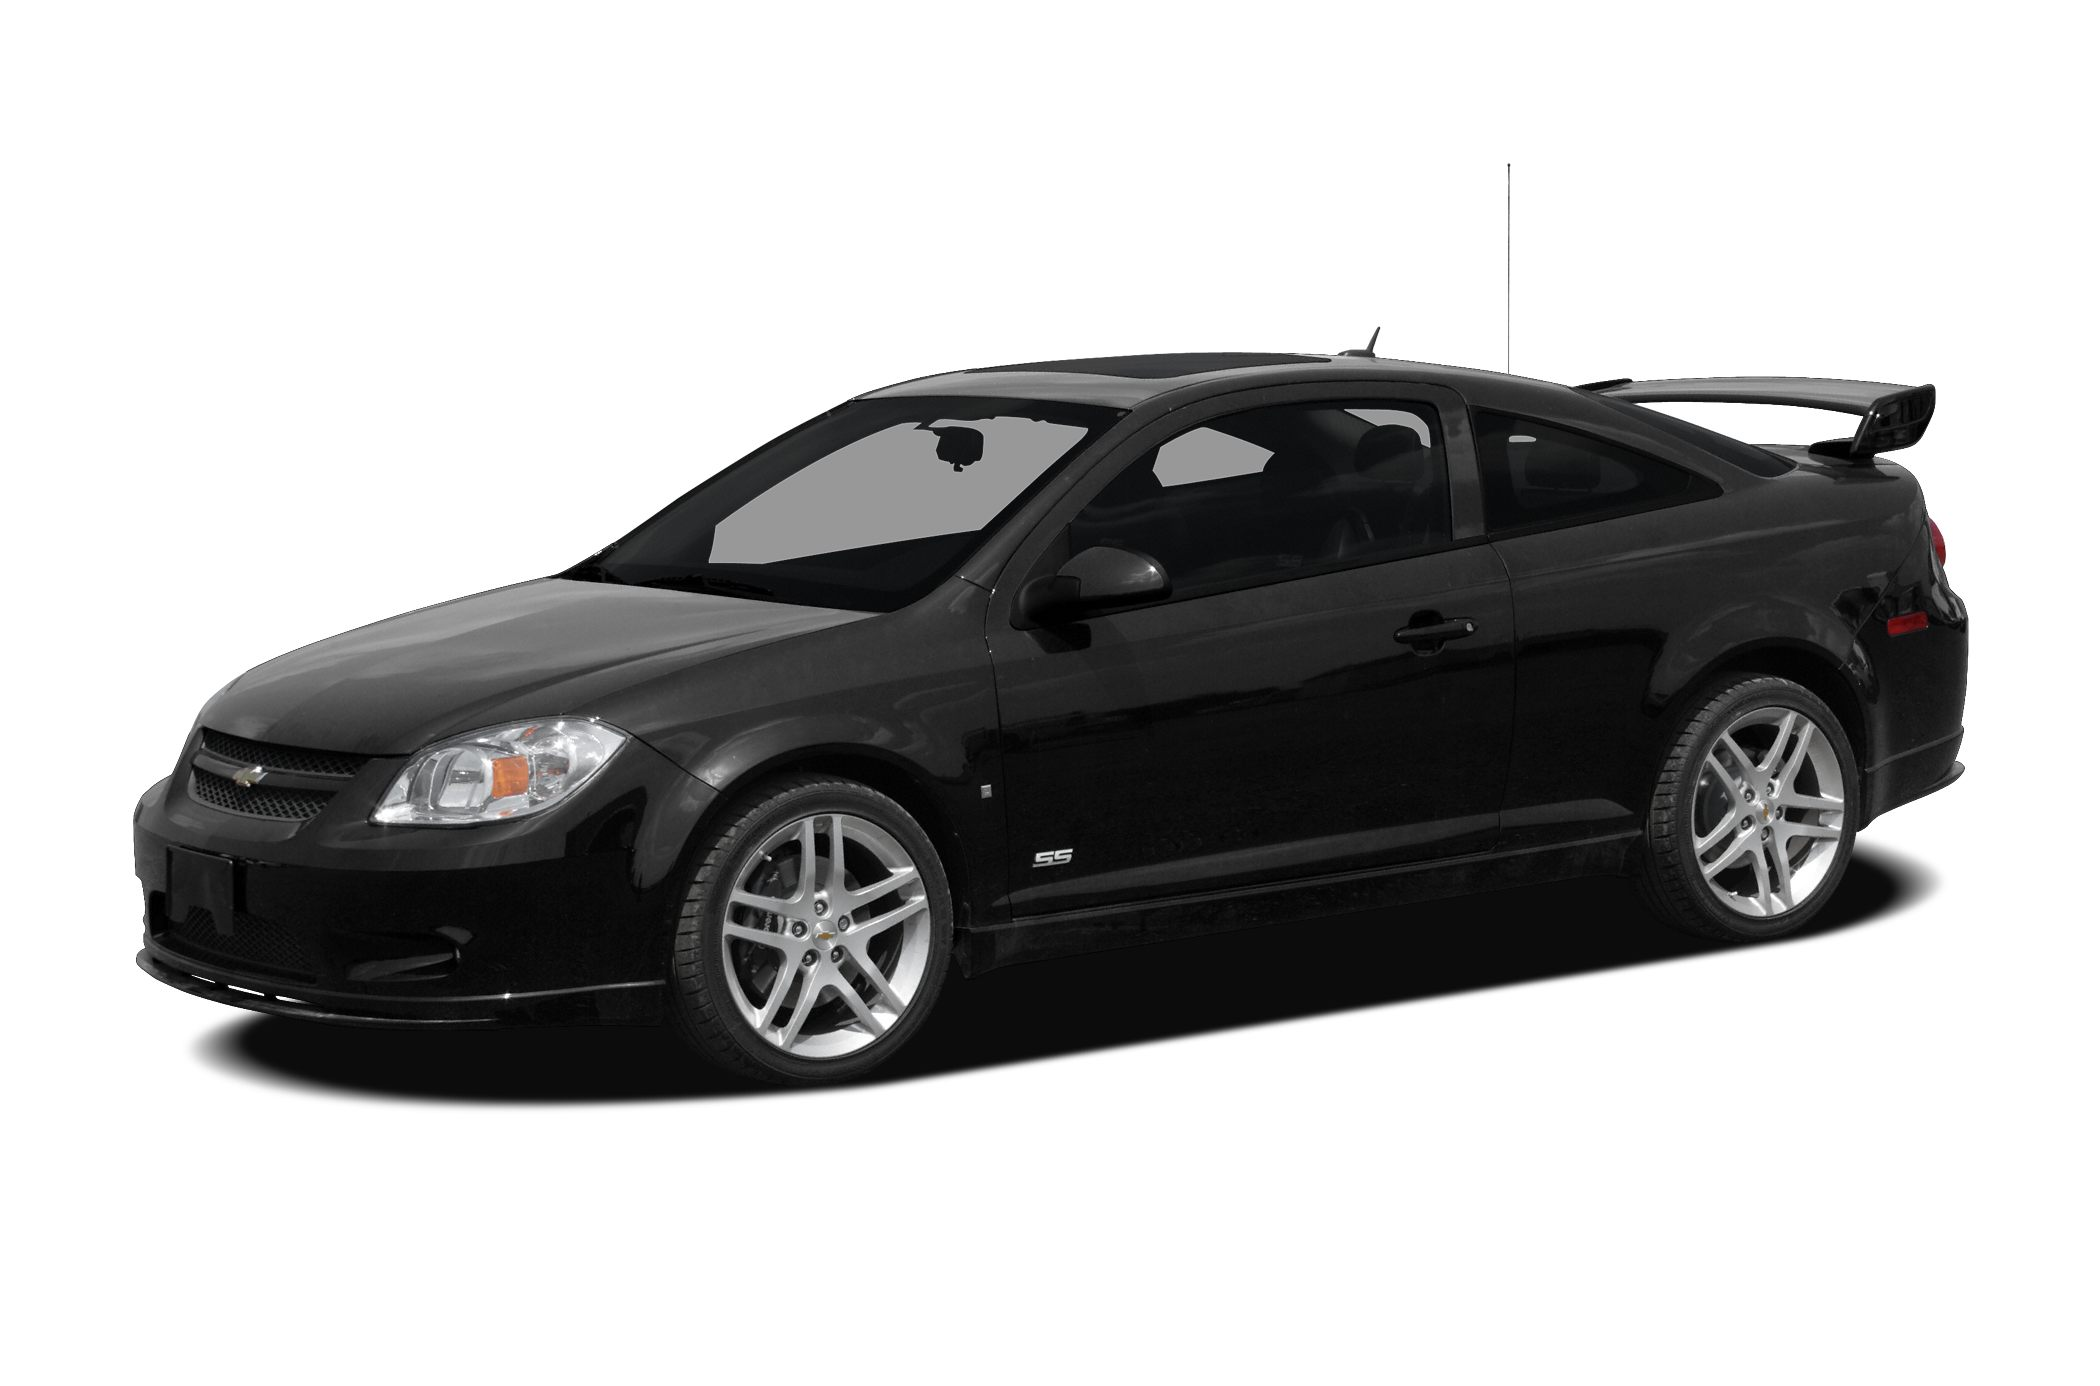 2010 Cobalt Ss >> 2010 Chevrolet Cobalt Ss Turbocharged 2dr Coupe Pictures